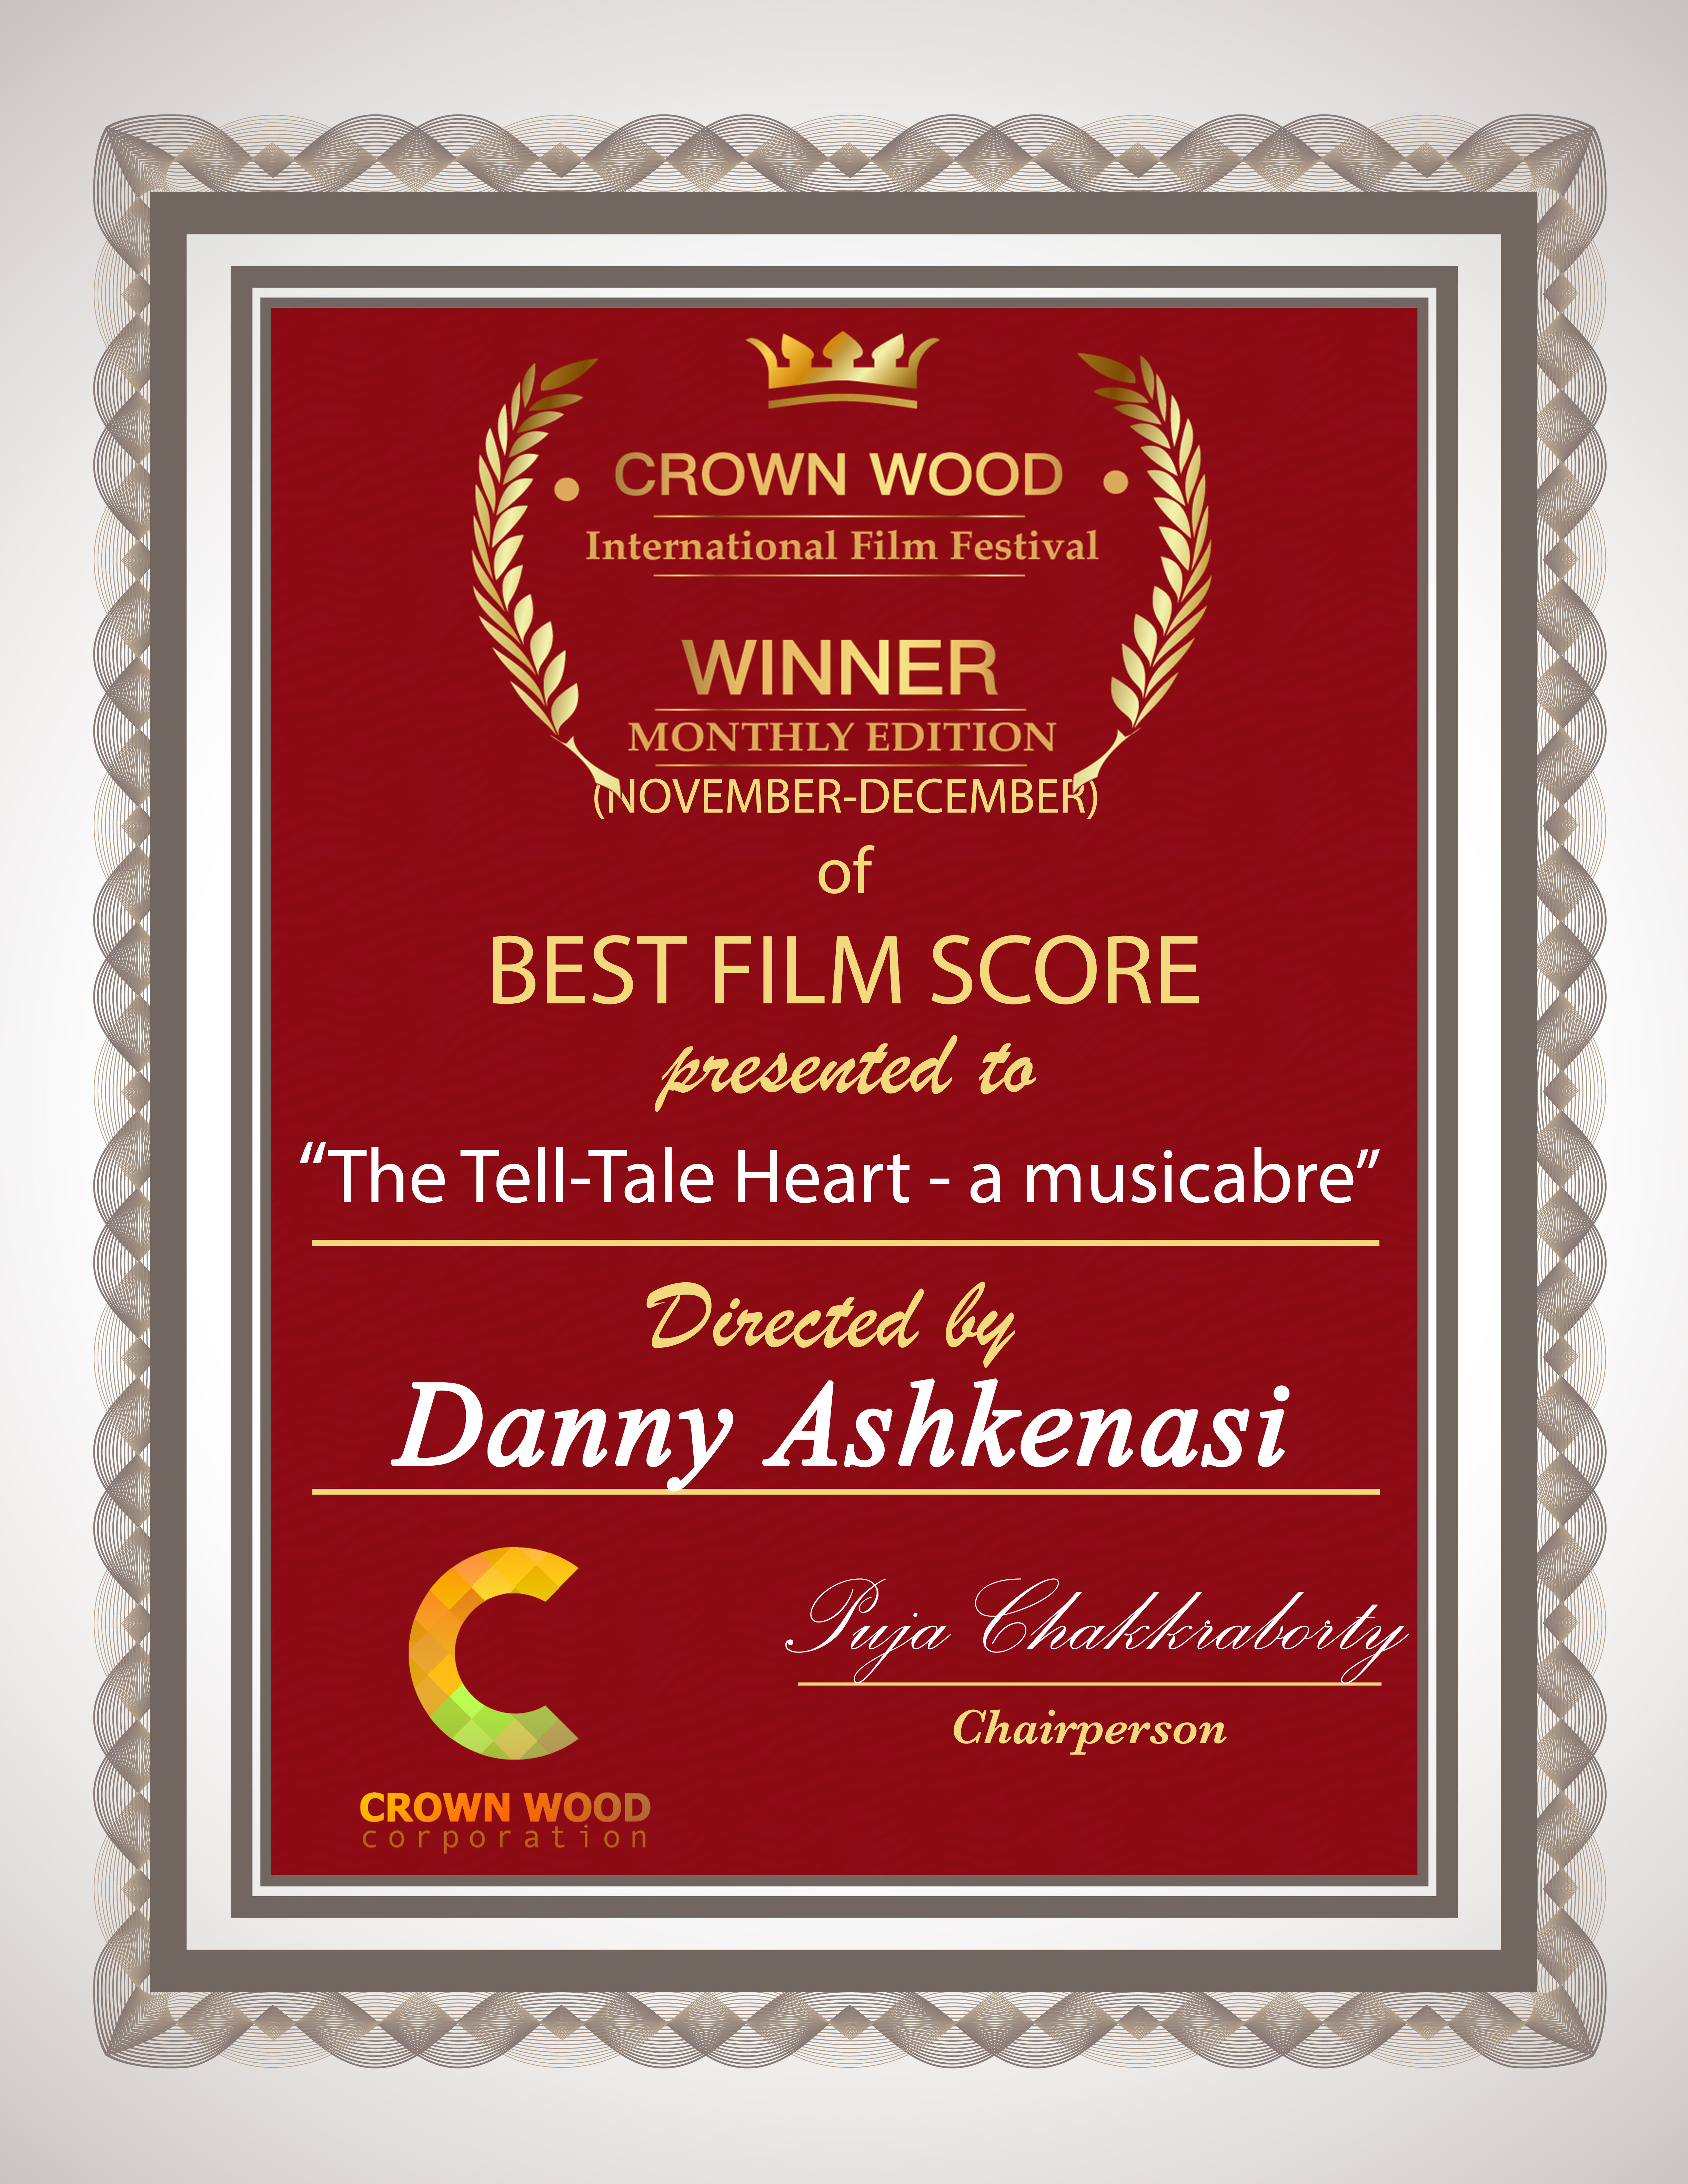 CW BEST FILM SCORE THE TELL